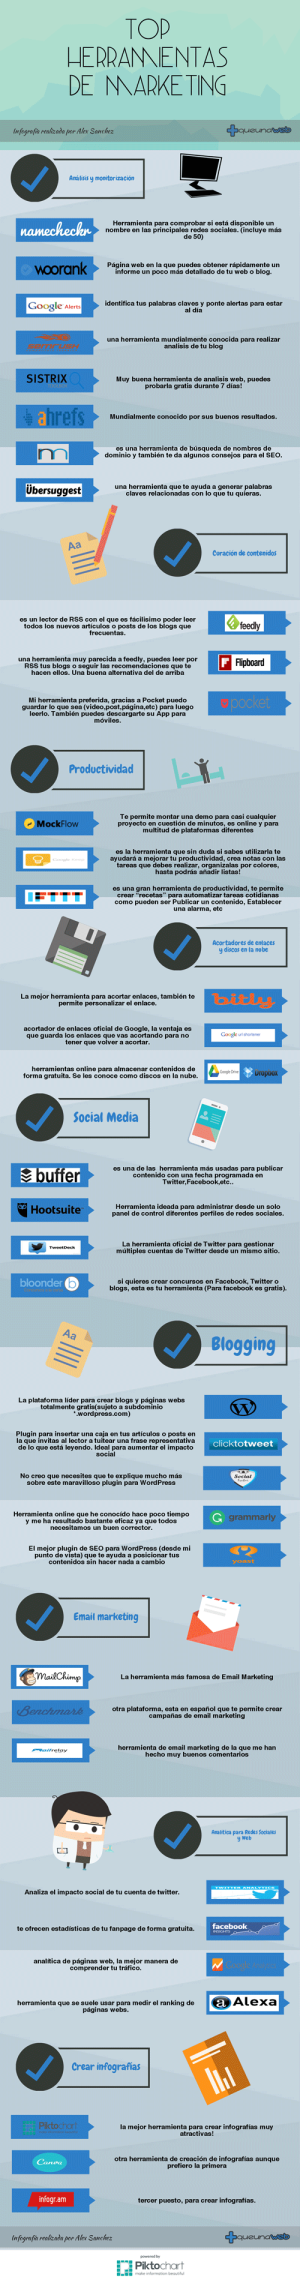 top-herramientas-marketing-internet